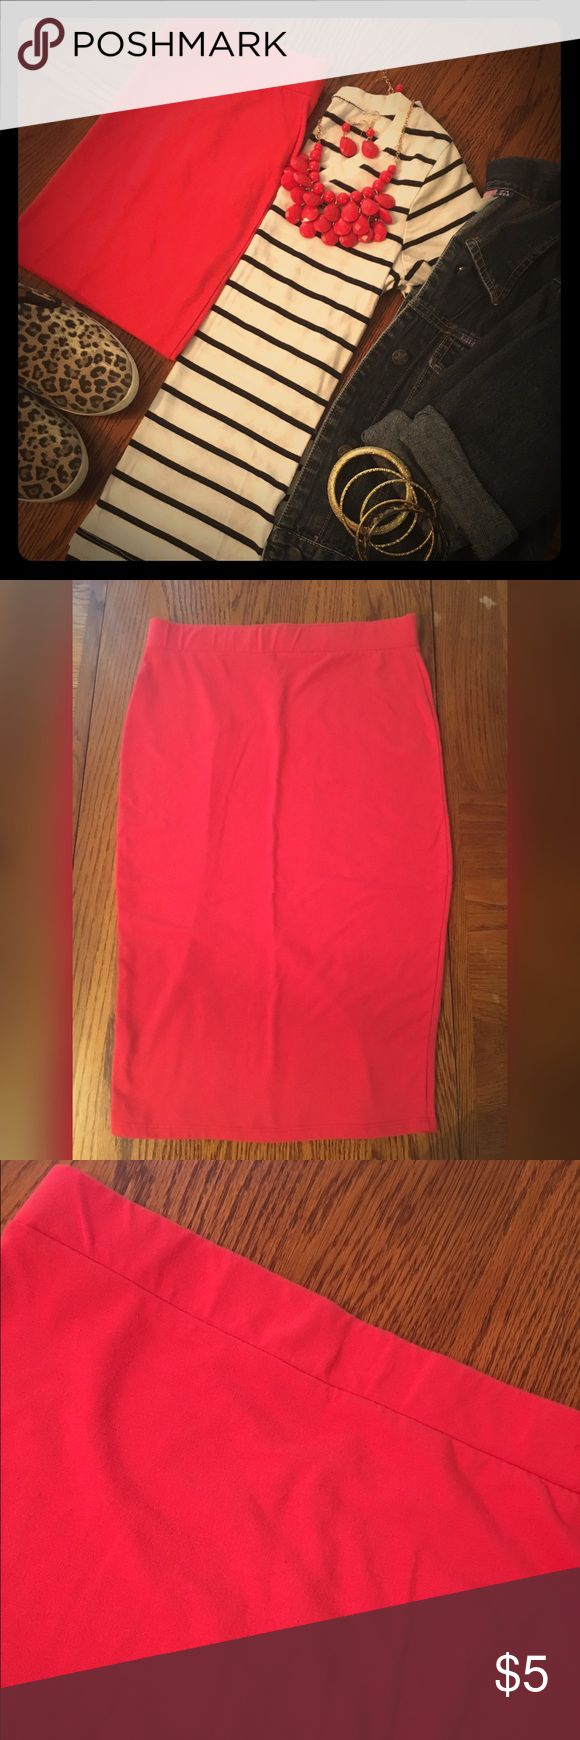 Red Pencil Skirt Cute red knee length pencil skirt. Can dress this up for work or in the go. In excellent used condition with no signs of rips or stains. Skirts Pencil